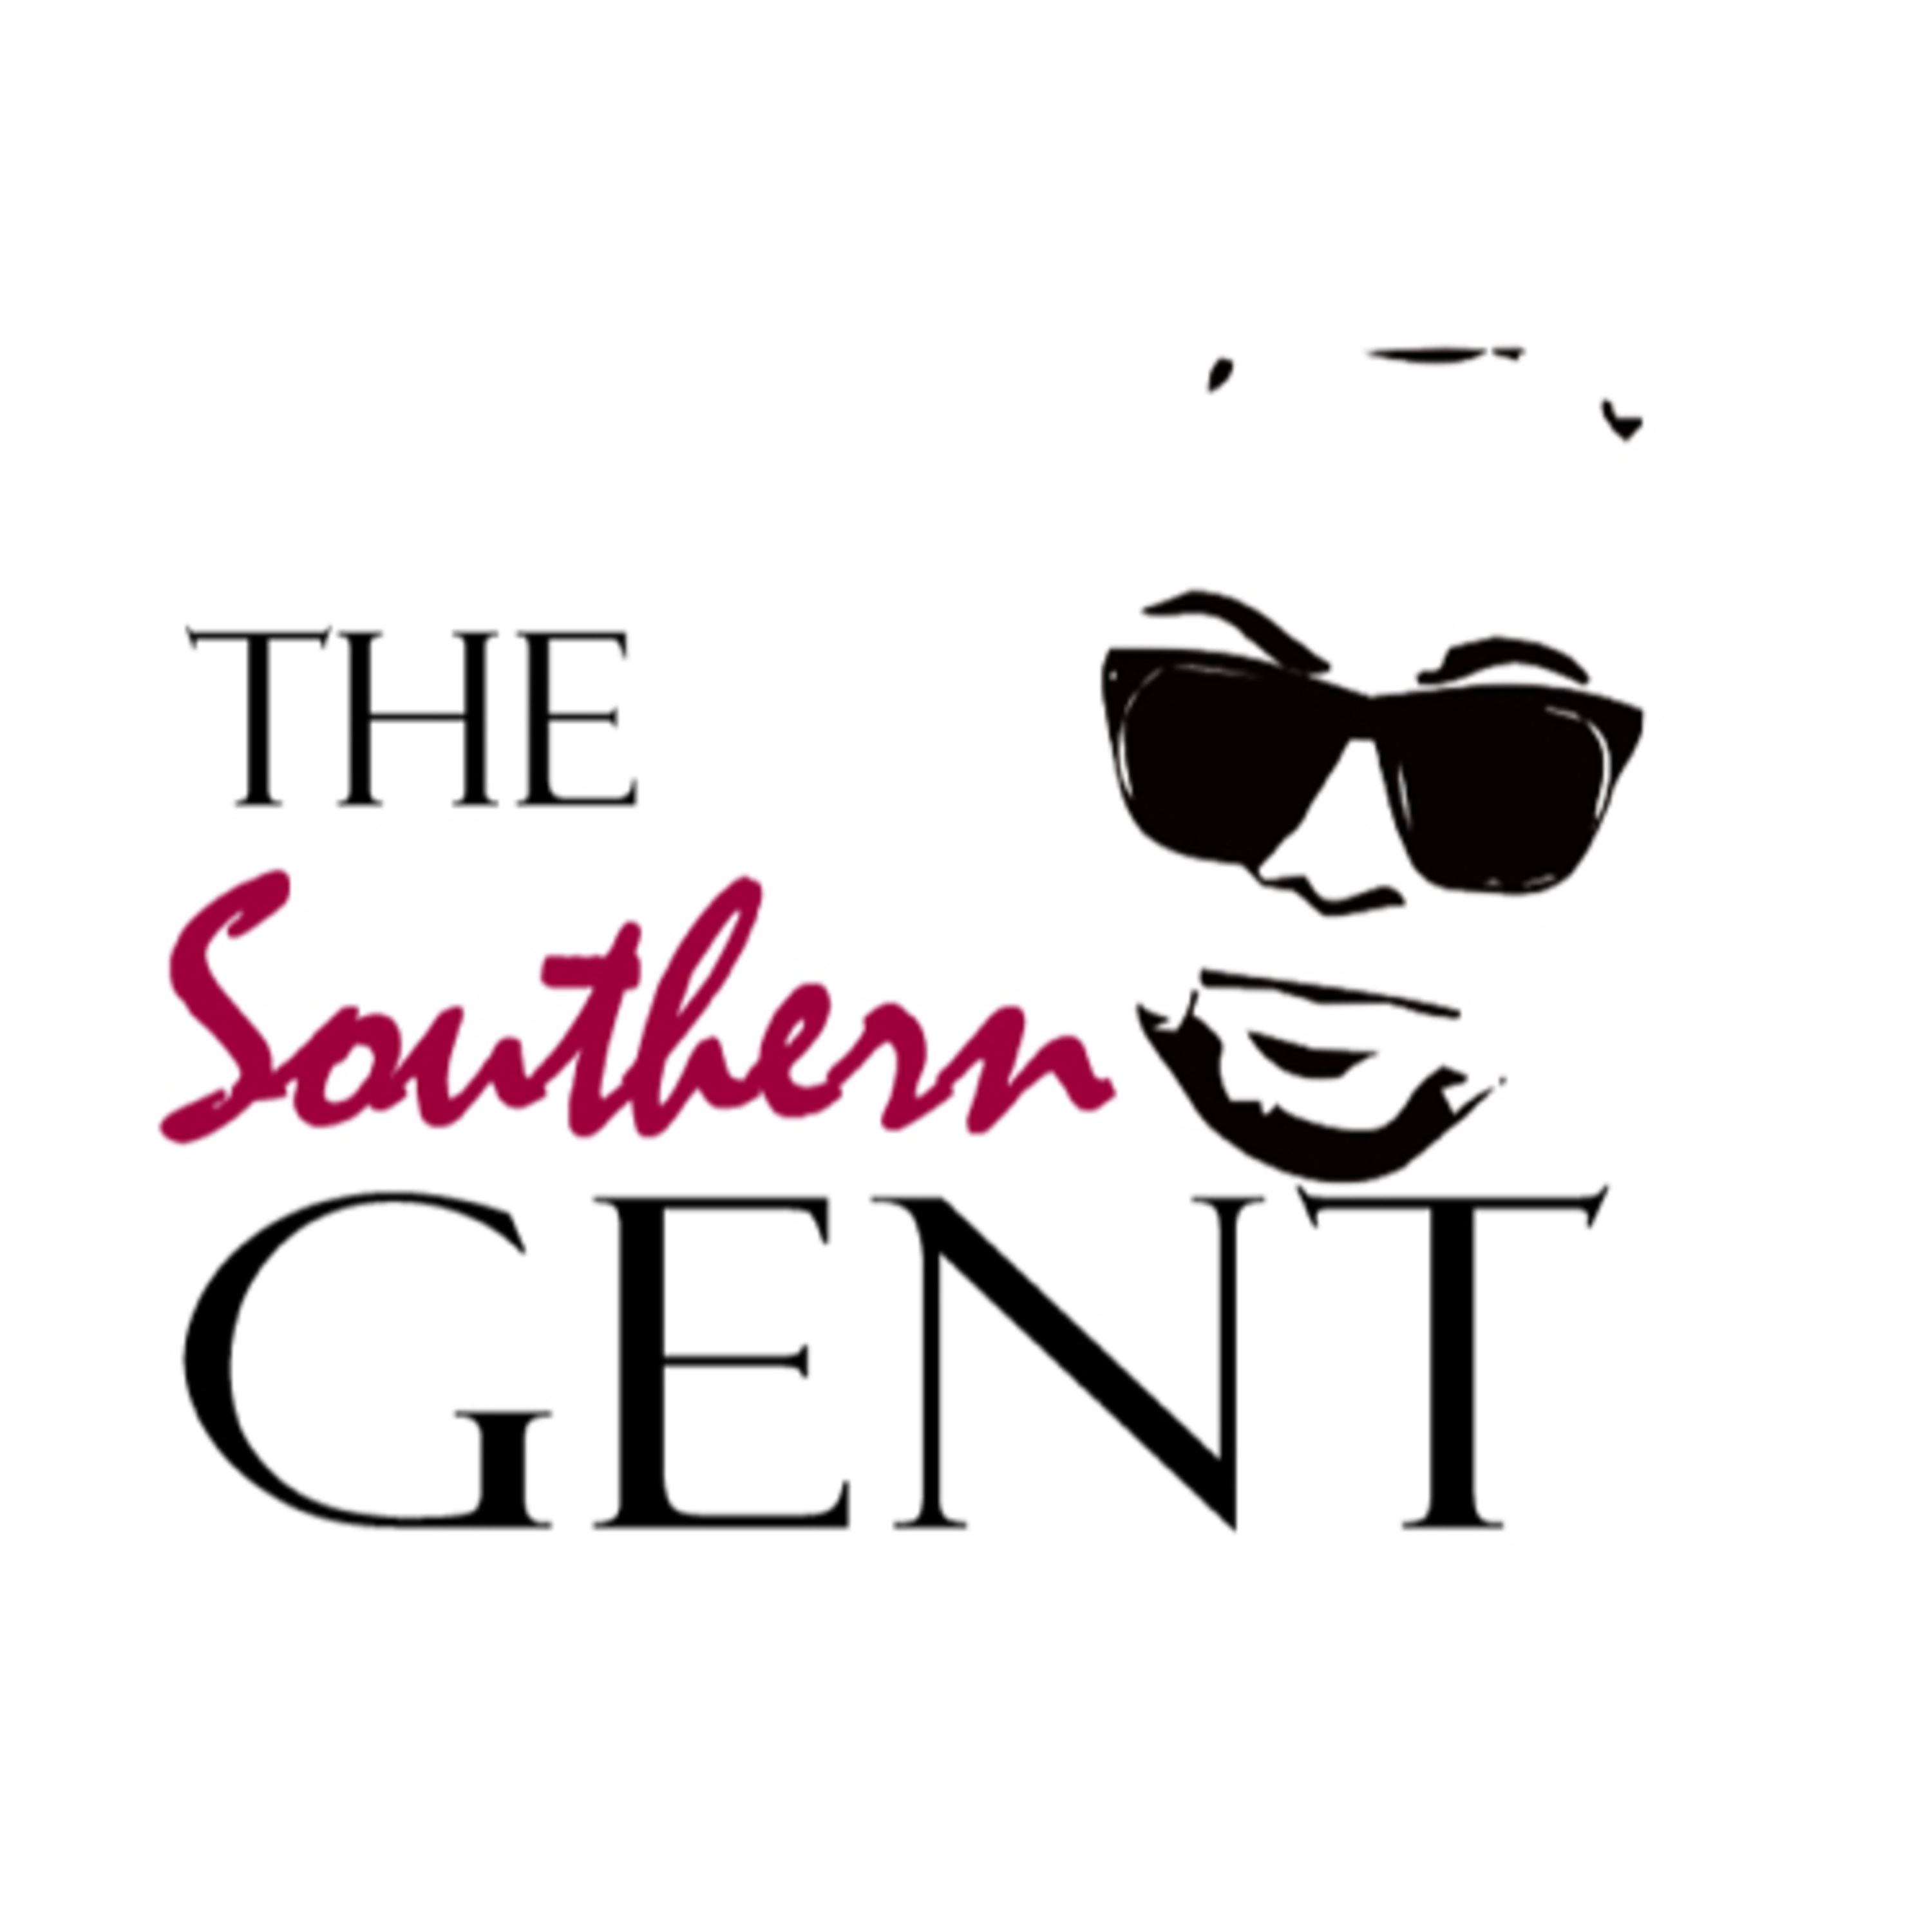 The Southern Gent